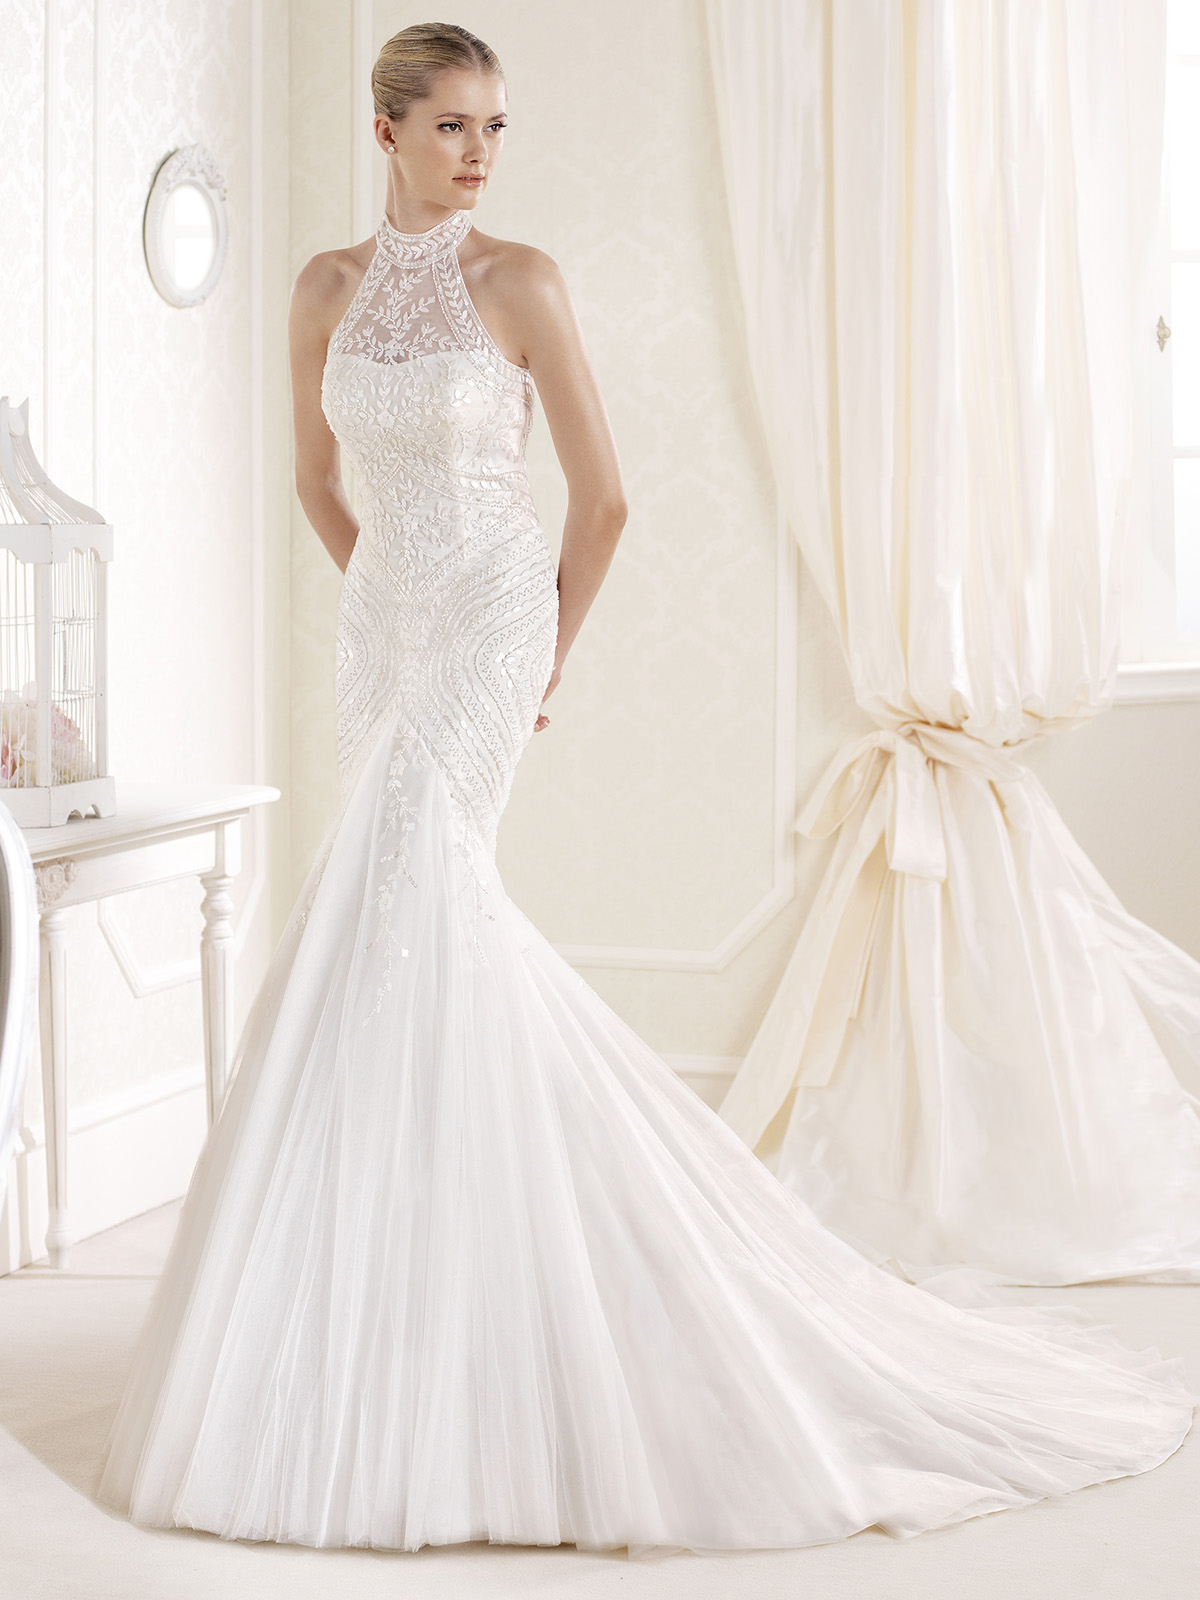 Wedding dress with collar gown and dress gallery for High collar wedding dress